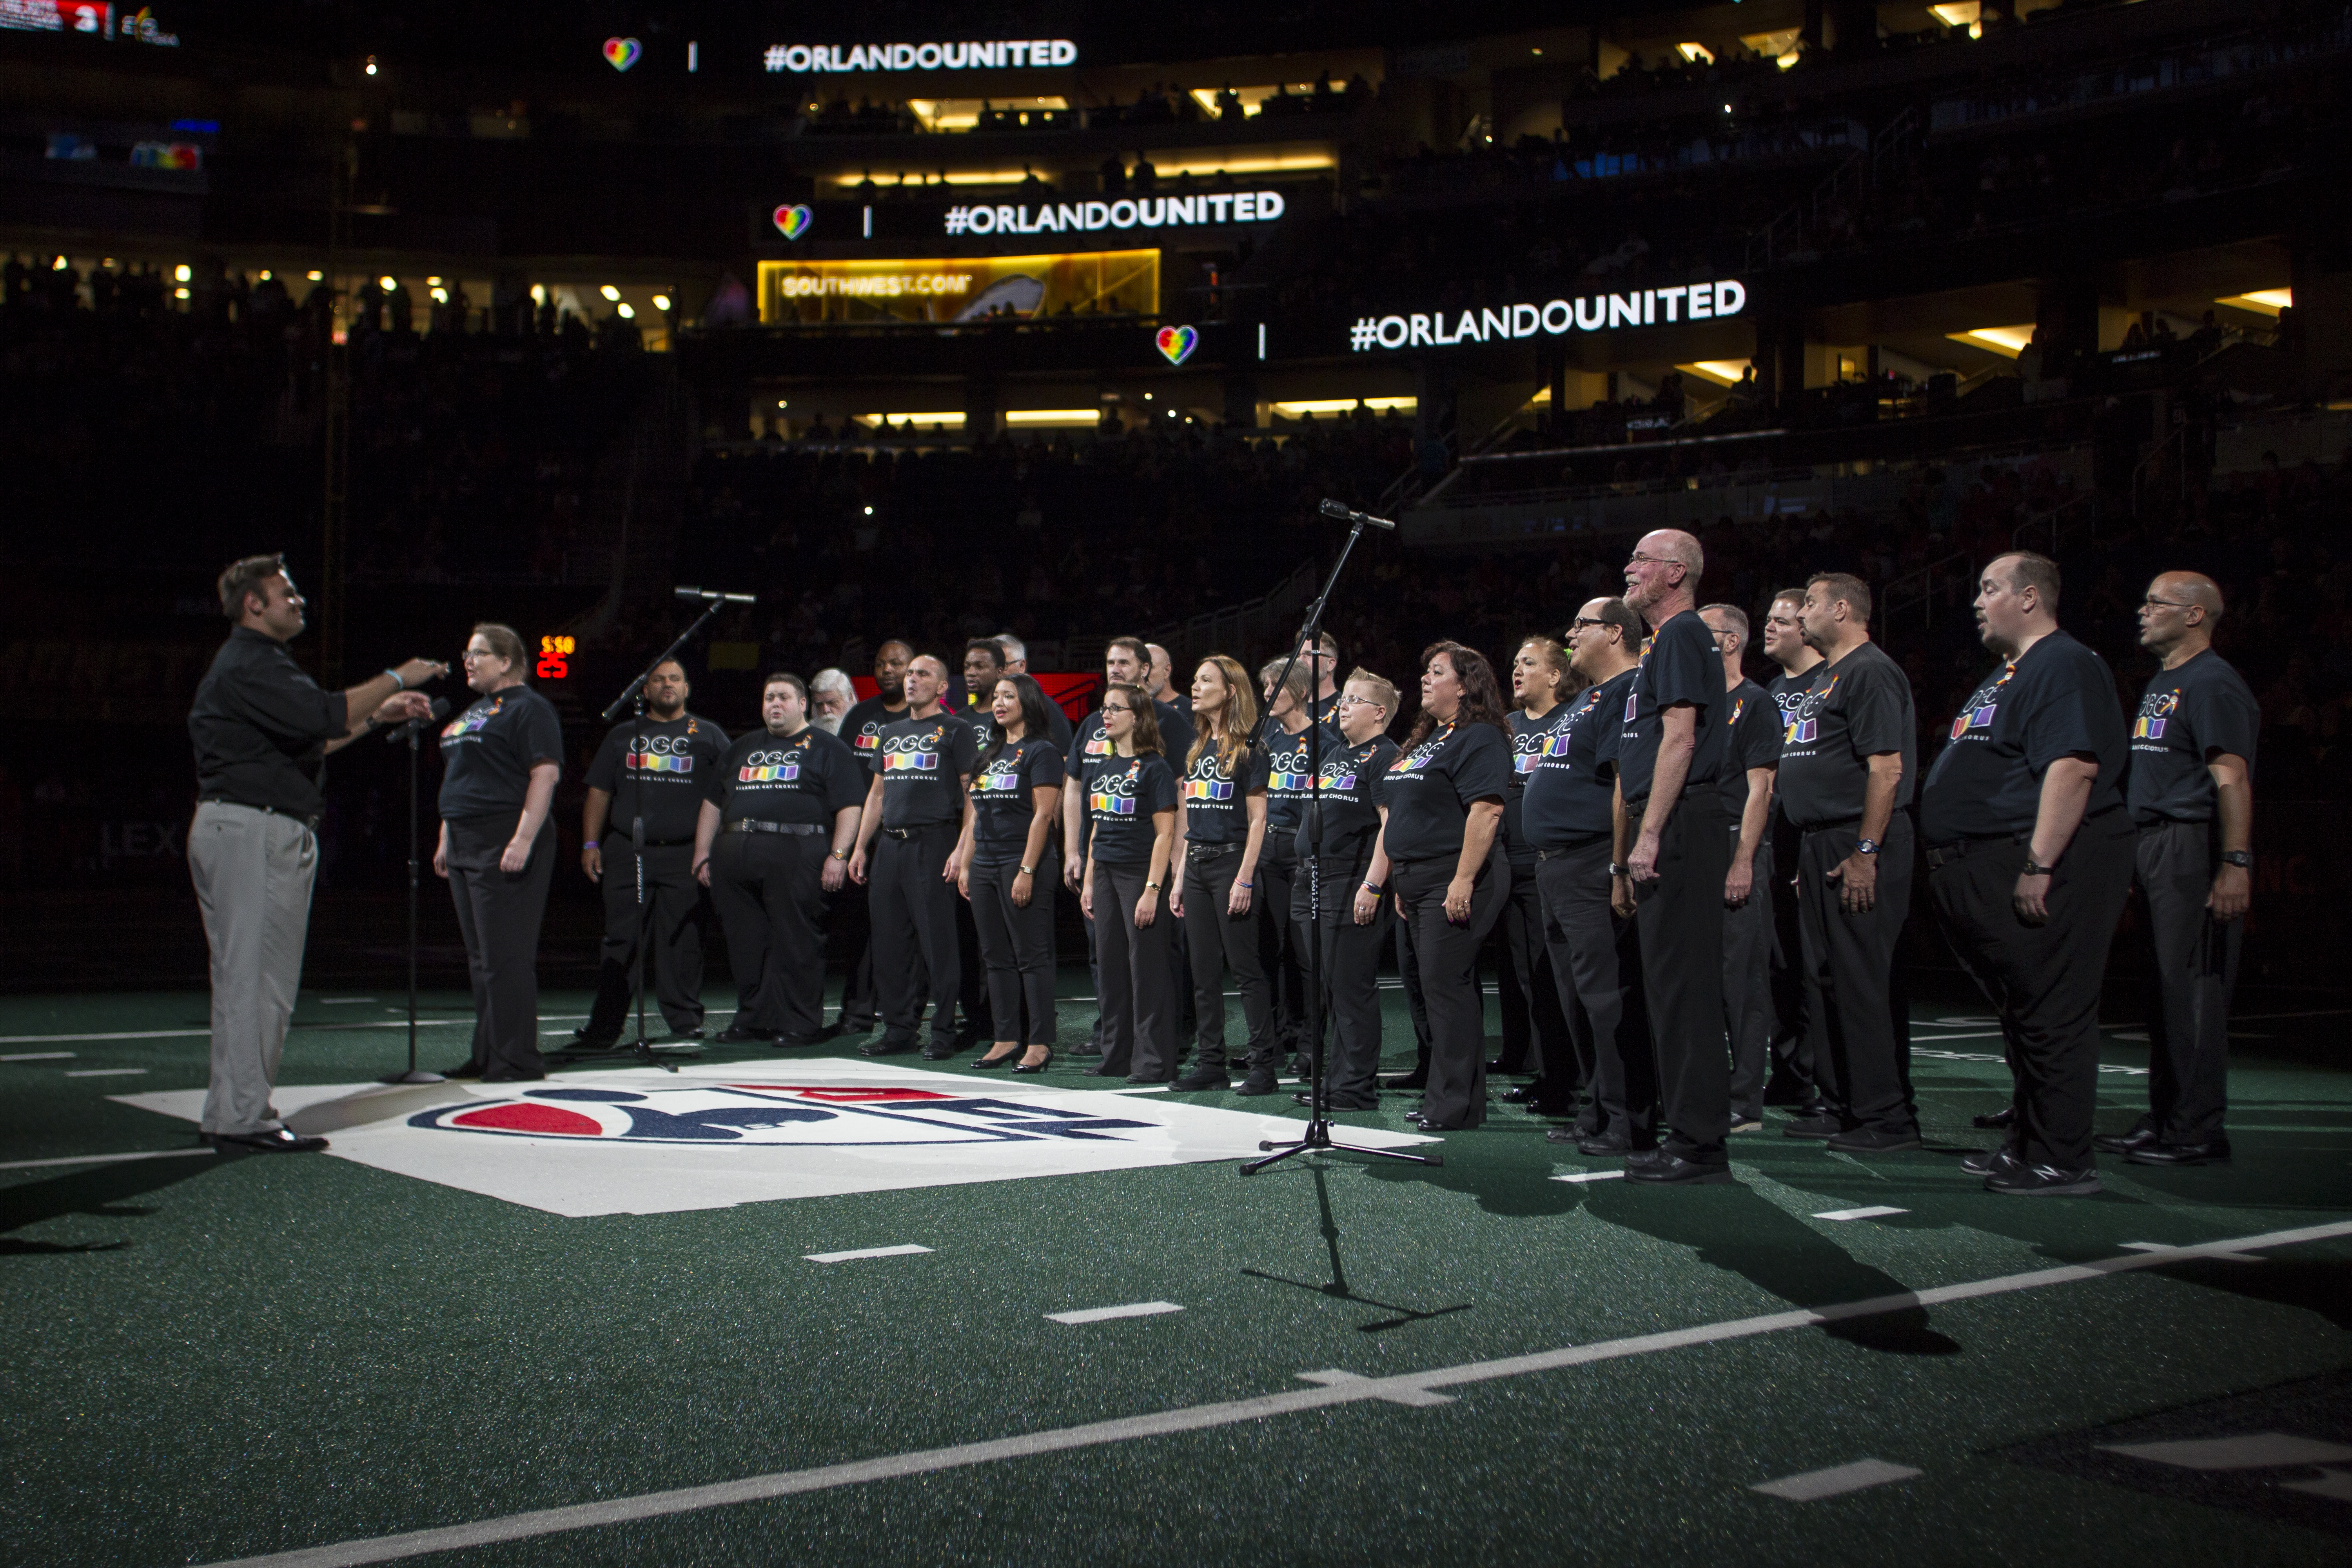 Choir singing in the middle of a stadium